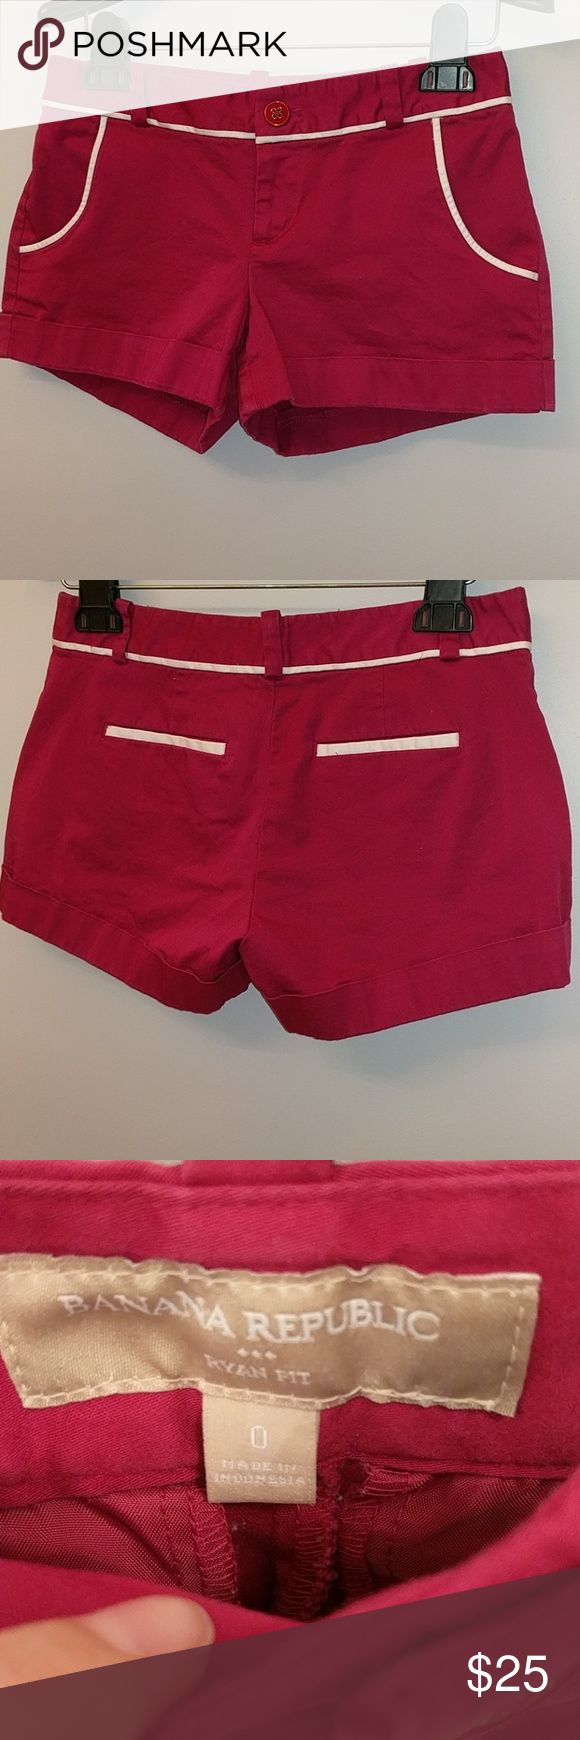 Banana Republic Ryan Fit Raspberry Shorts Banana Republic Ryan Fit raspberry colored shorts. Front pockets. I have 2 other colors available.  I tend to have problems finding pants/shorts that fit because there is often a gap in the back.  These fit me well and there is no gap! Banana Republic Shorts